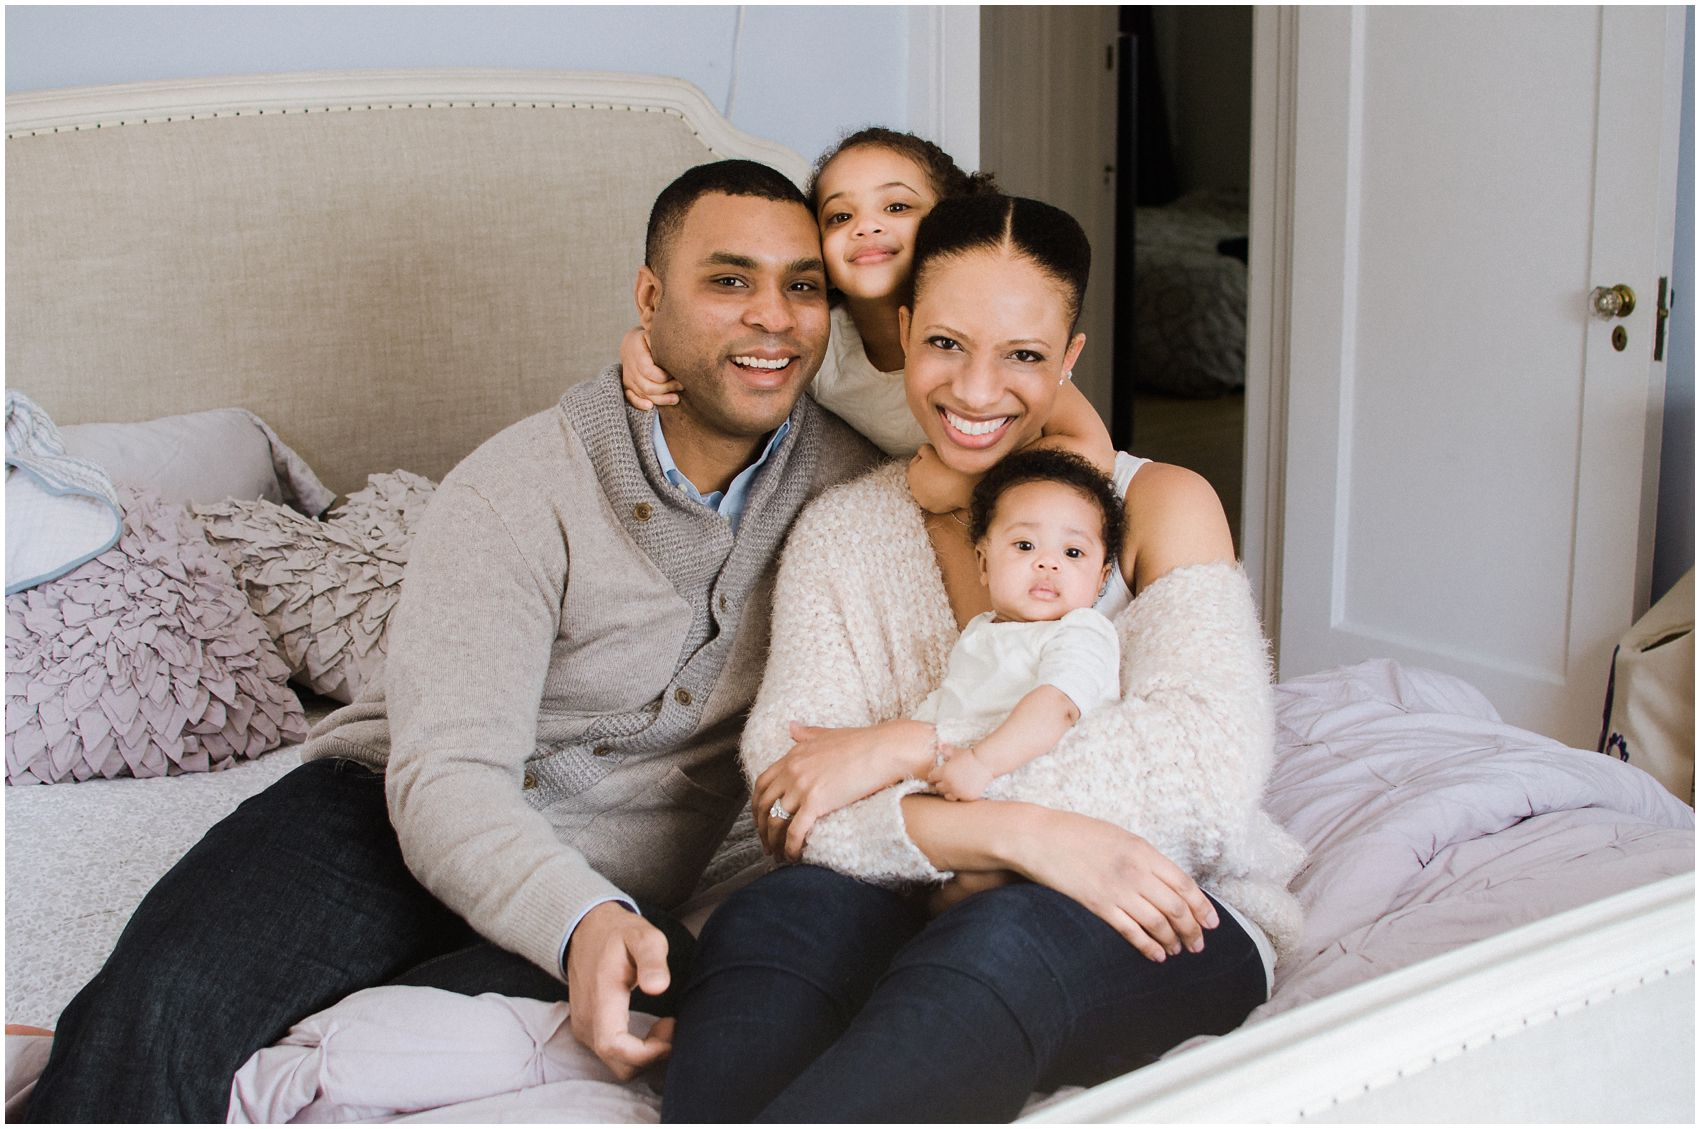 family pictures at home with the newborn girl at home in New York, NY